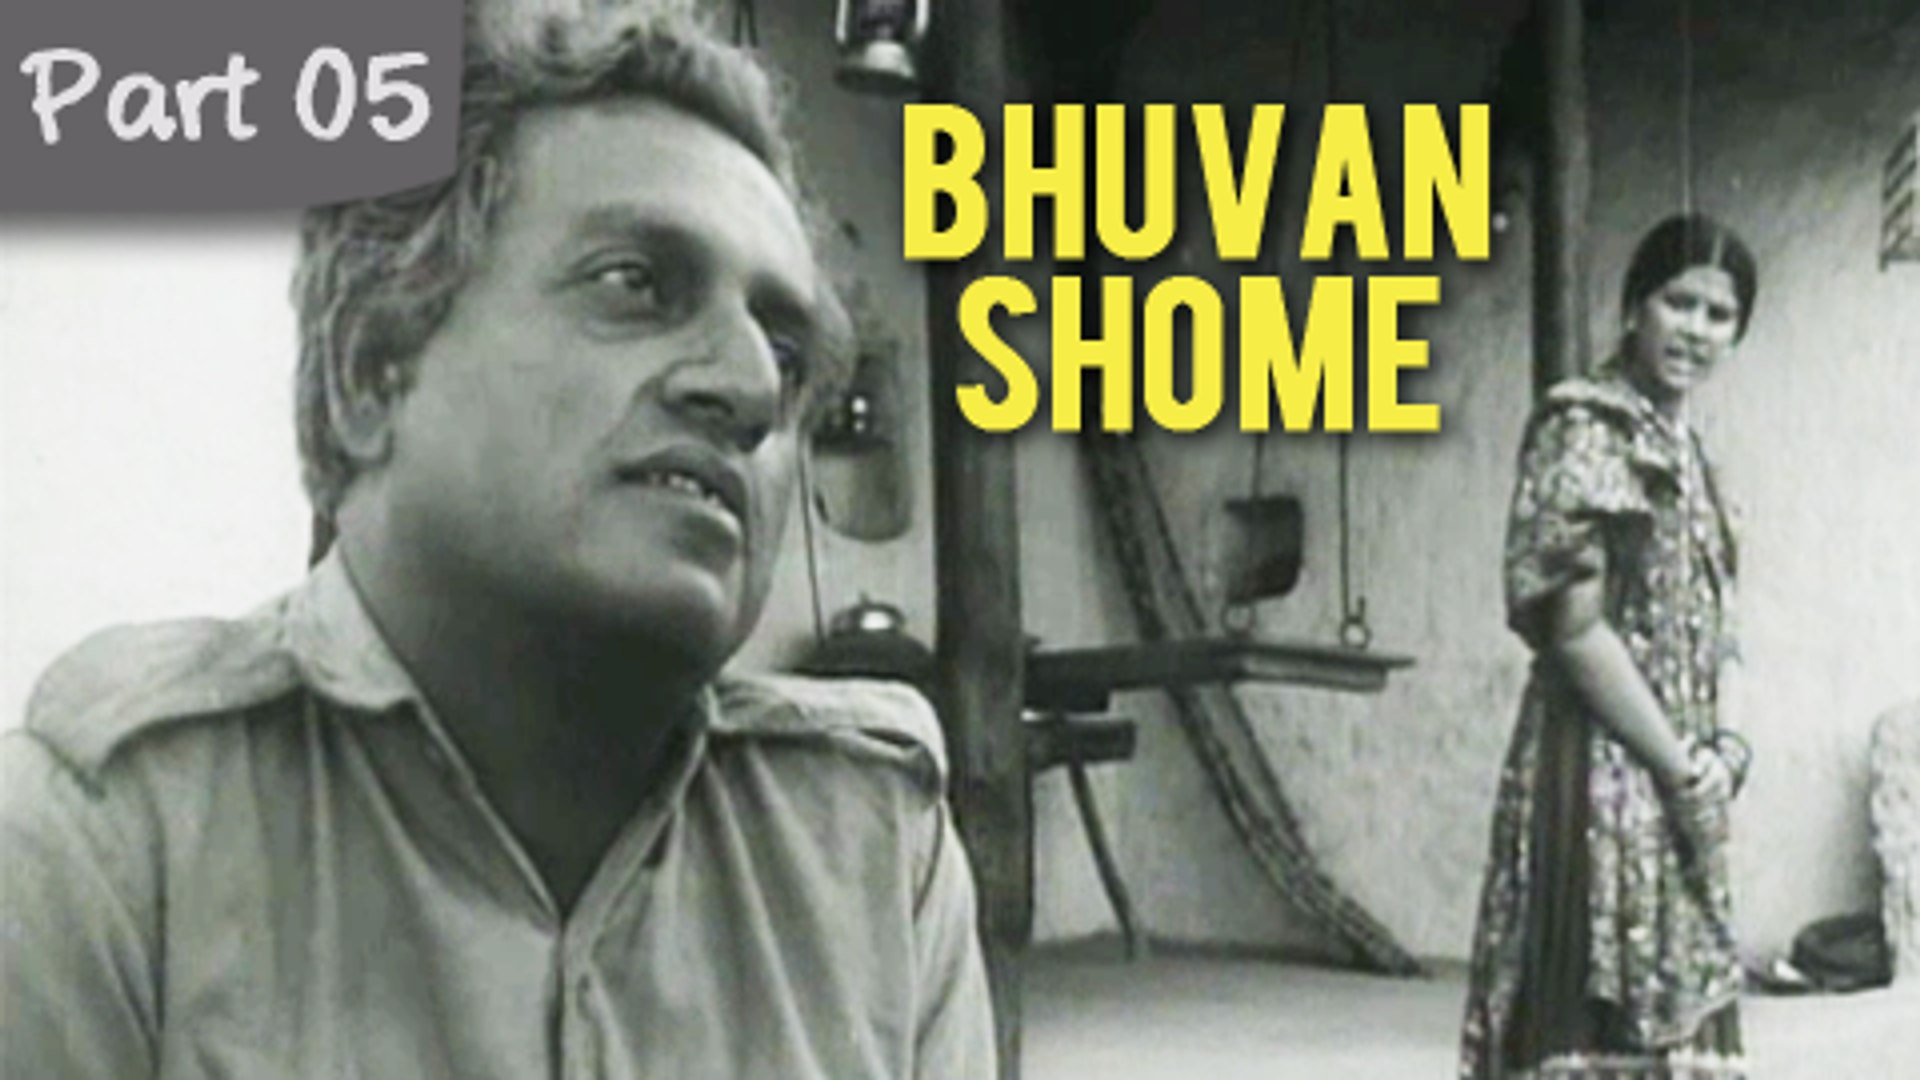 Bhuvan Shome - Part 05/08 - Cult Classic Groundbreaking Indian Film - Narrated By Amitabh Bachchan